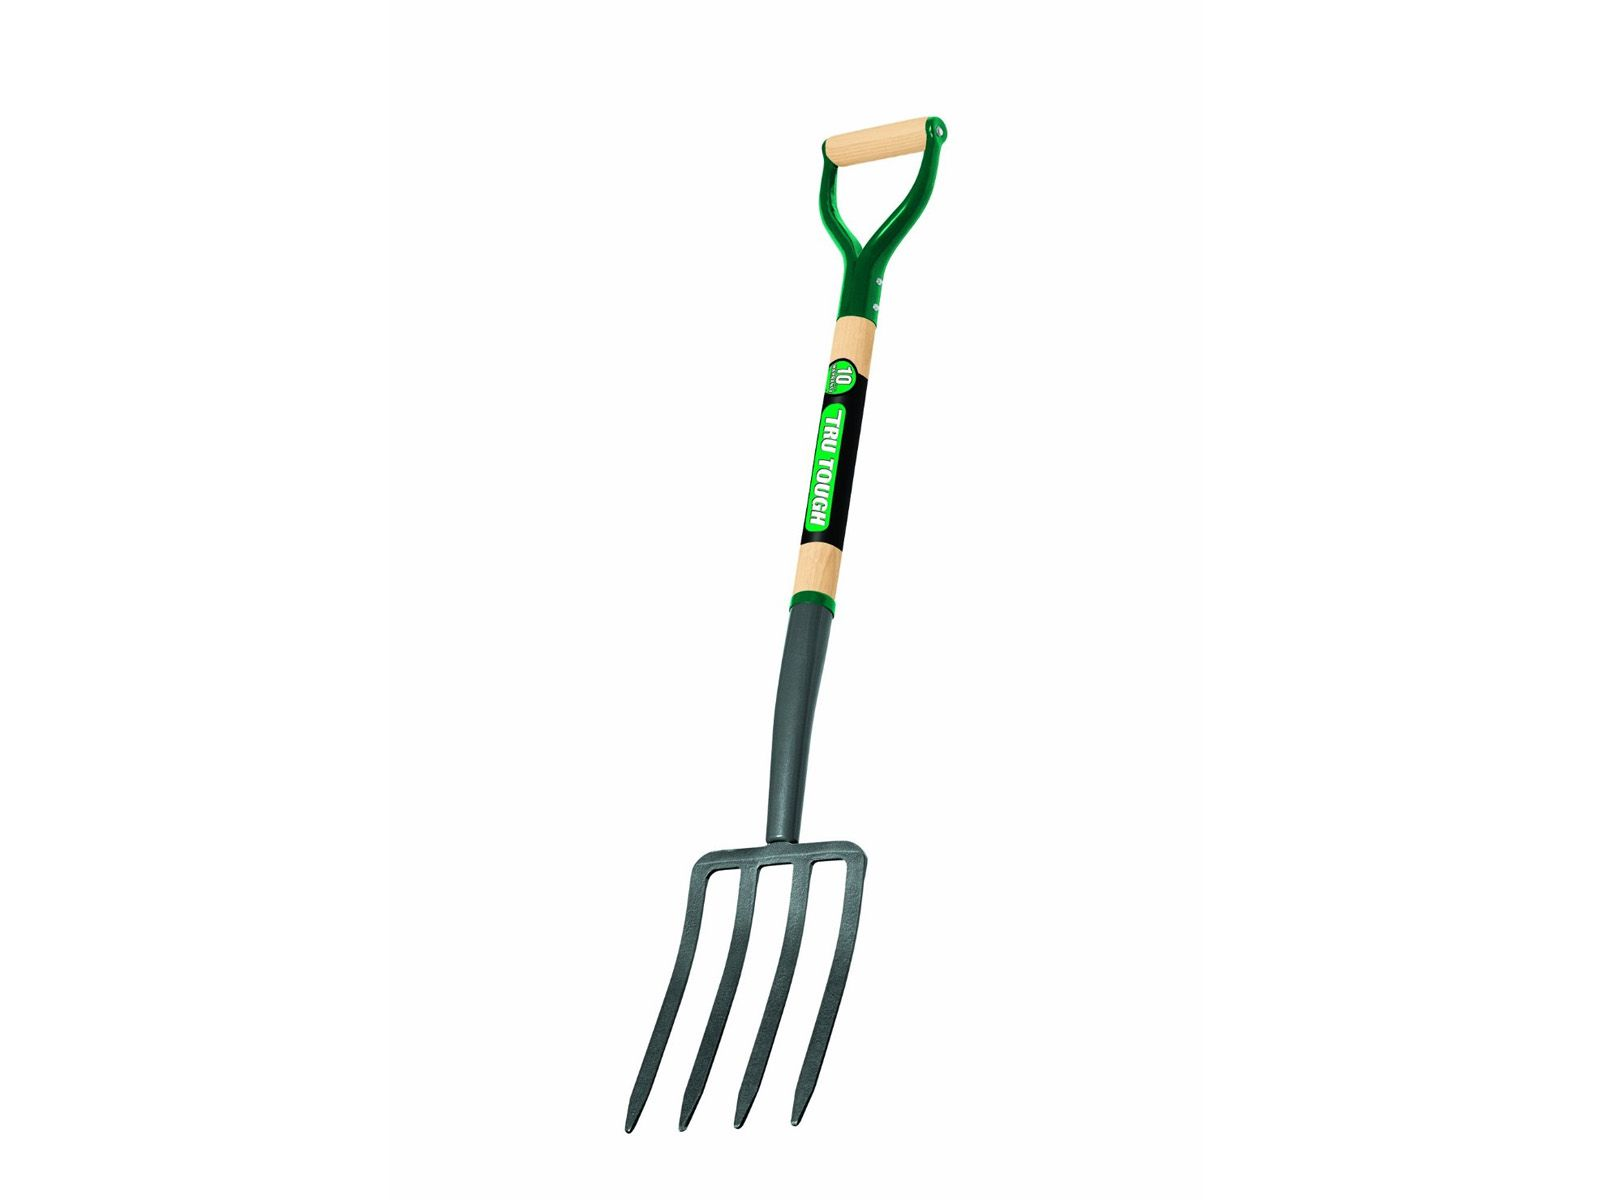 The garden tool review gardening tool reviews from a professional - Finding The Right Garden Spading Fork Landscaping Tools